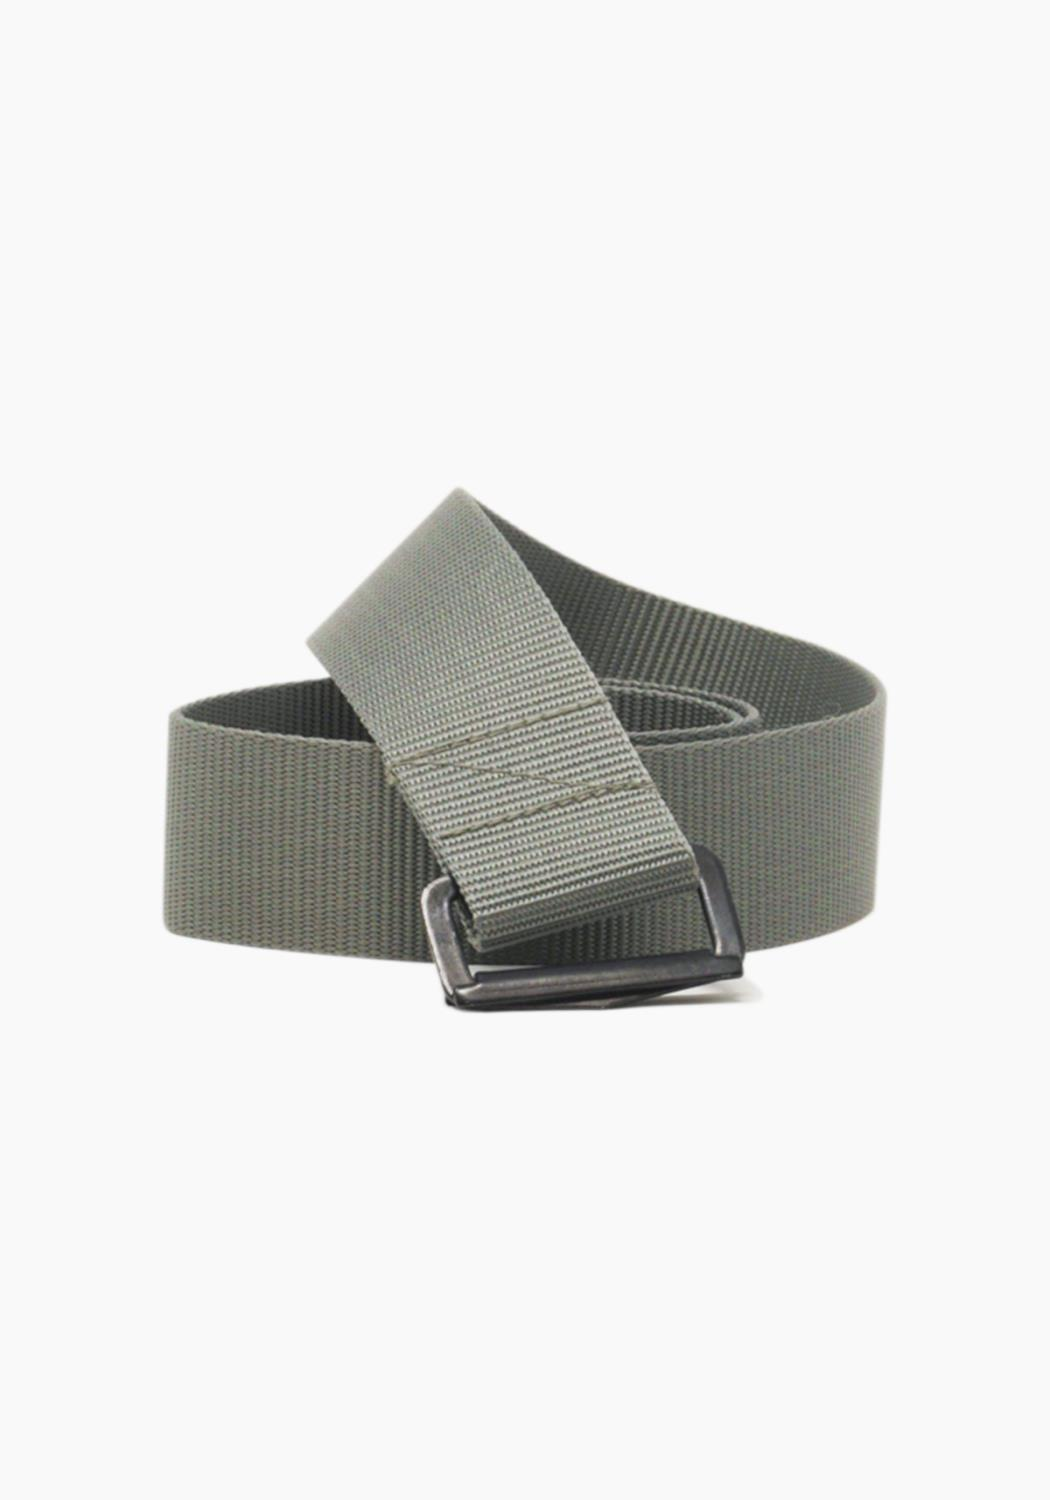 Rothco -  Heavy Duty Riggers Belt